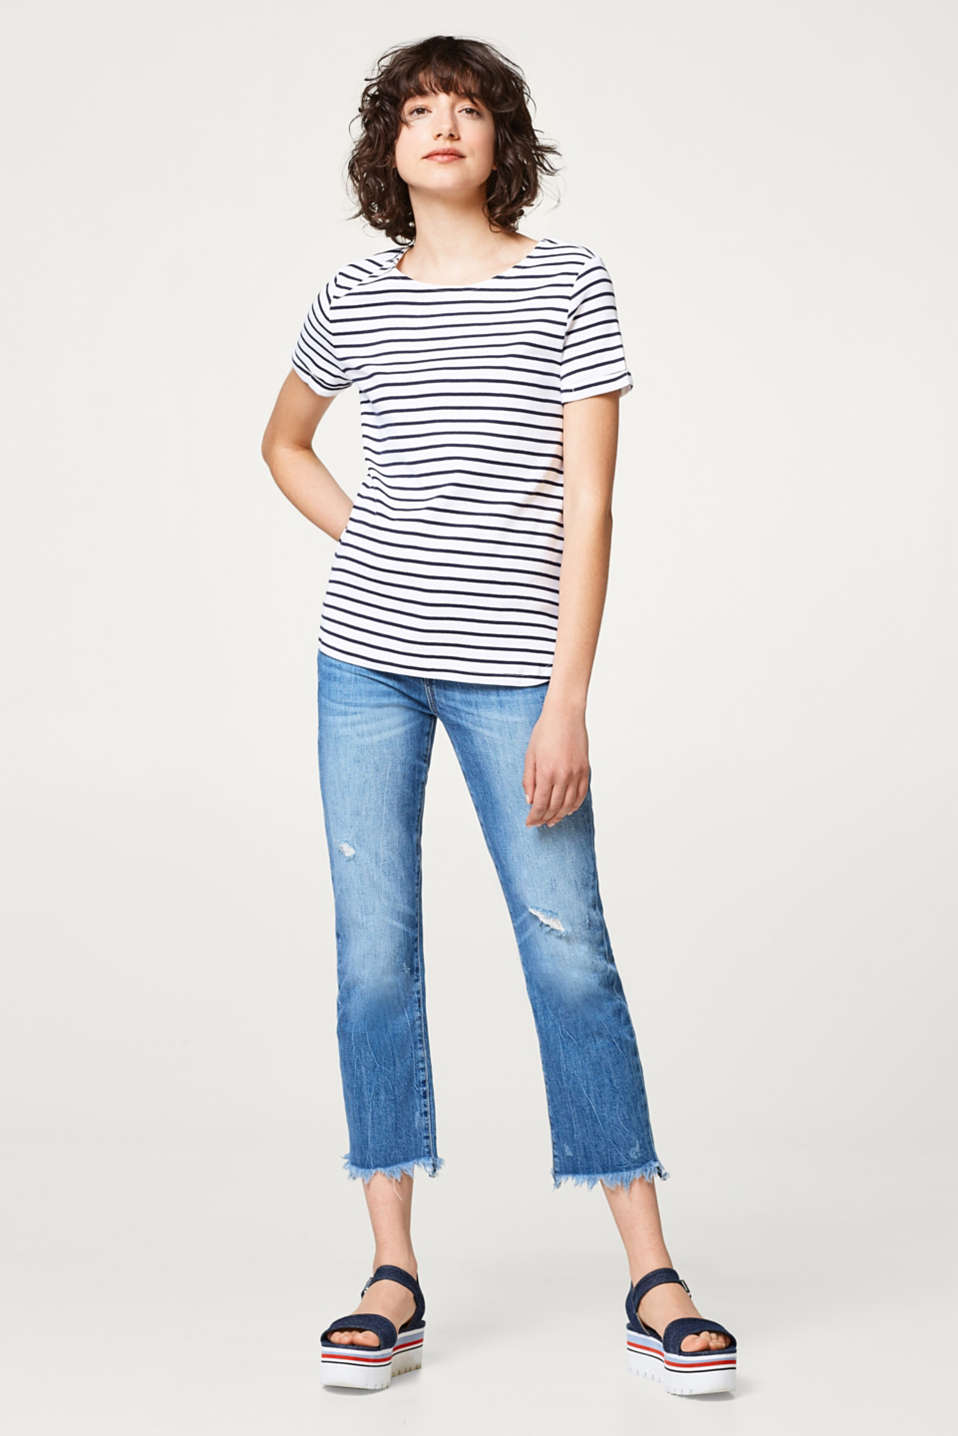 Striped T-shirt with a decorative back, 100% cotton